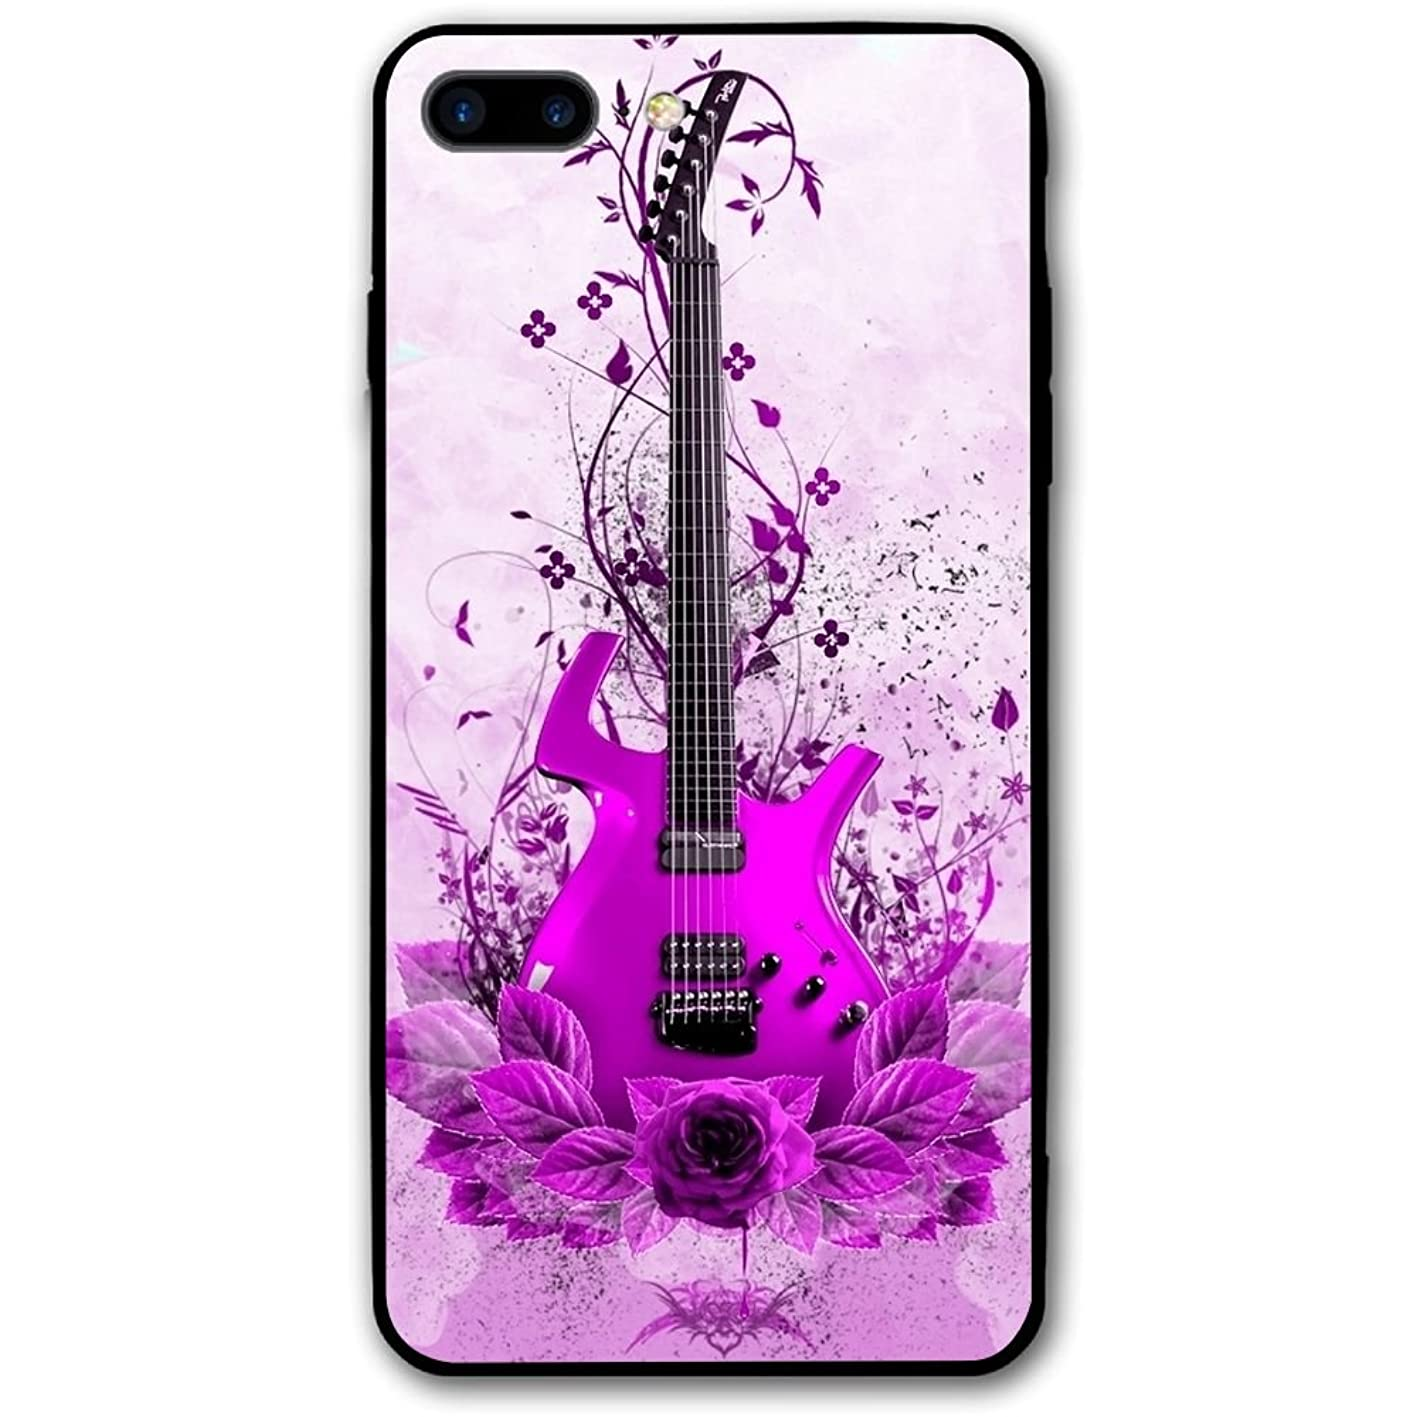 5.5Inch iPhone 8 Plus Case Musical Instruments Guitar Anti-Scratch Shock Proof Hard PC Protective Case Cover jgkasfbuffw279